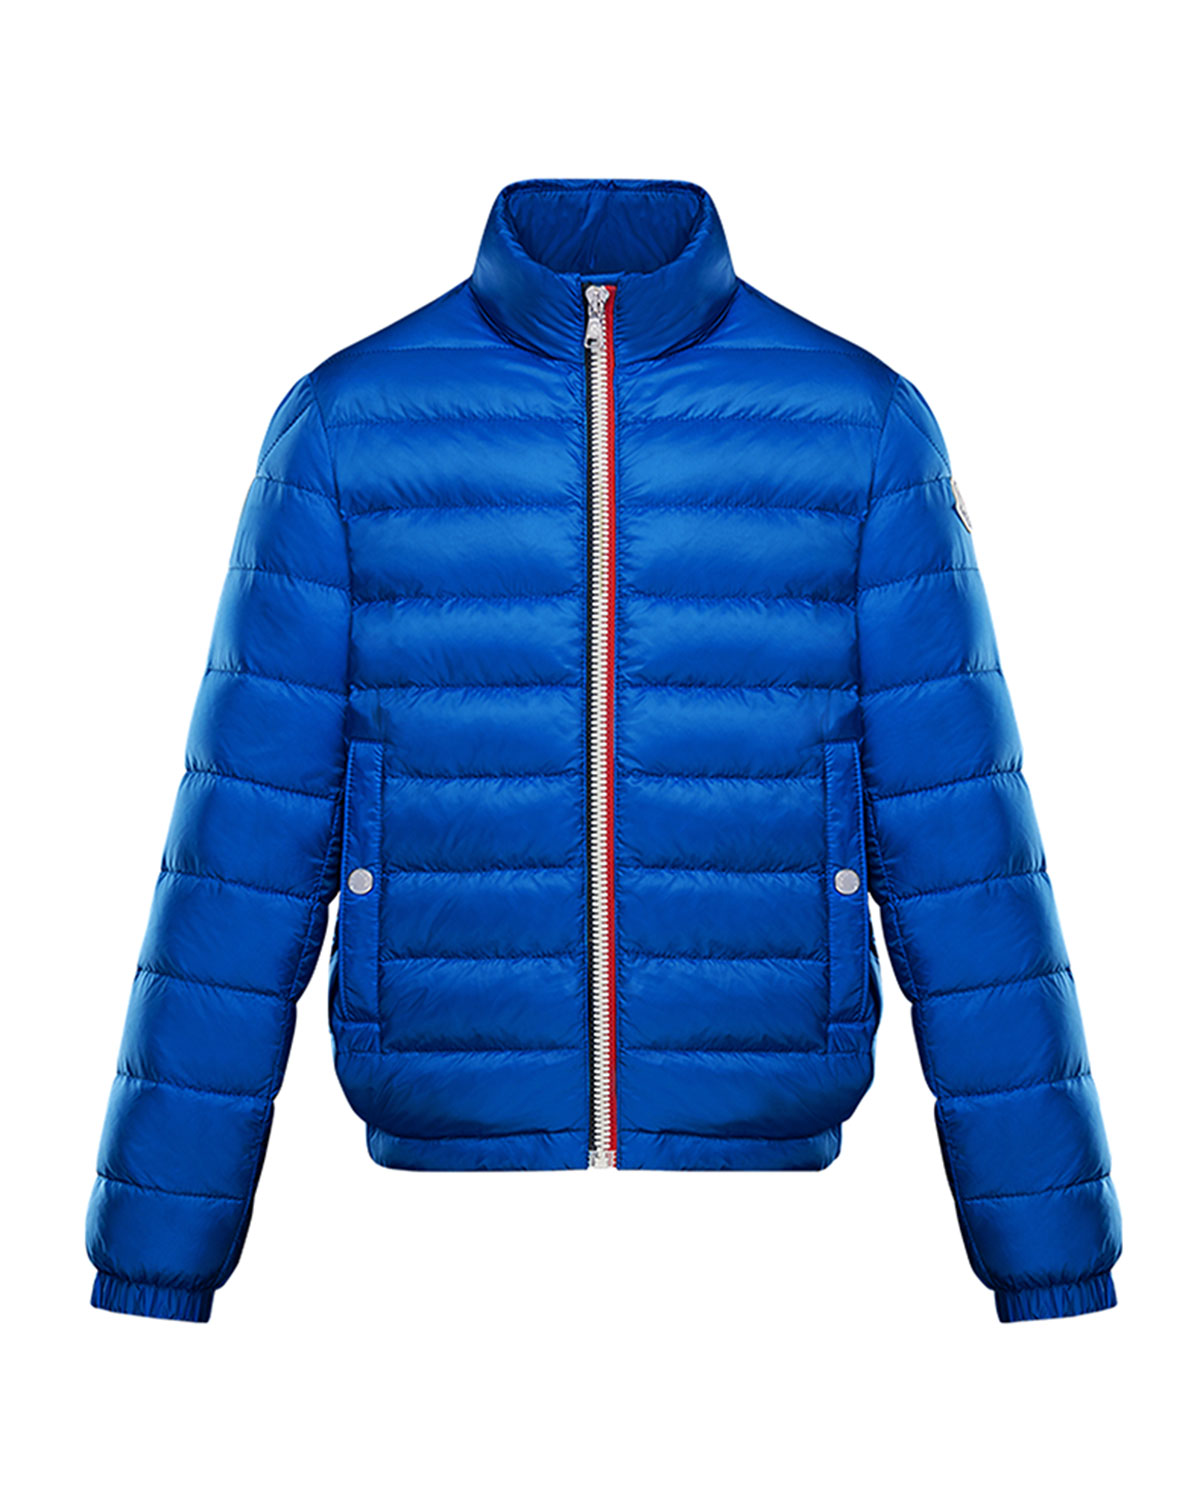 Moncler Jackets BOYS' TARN LIGHTWEIGHT DOWN JACKET